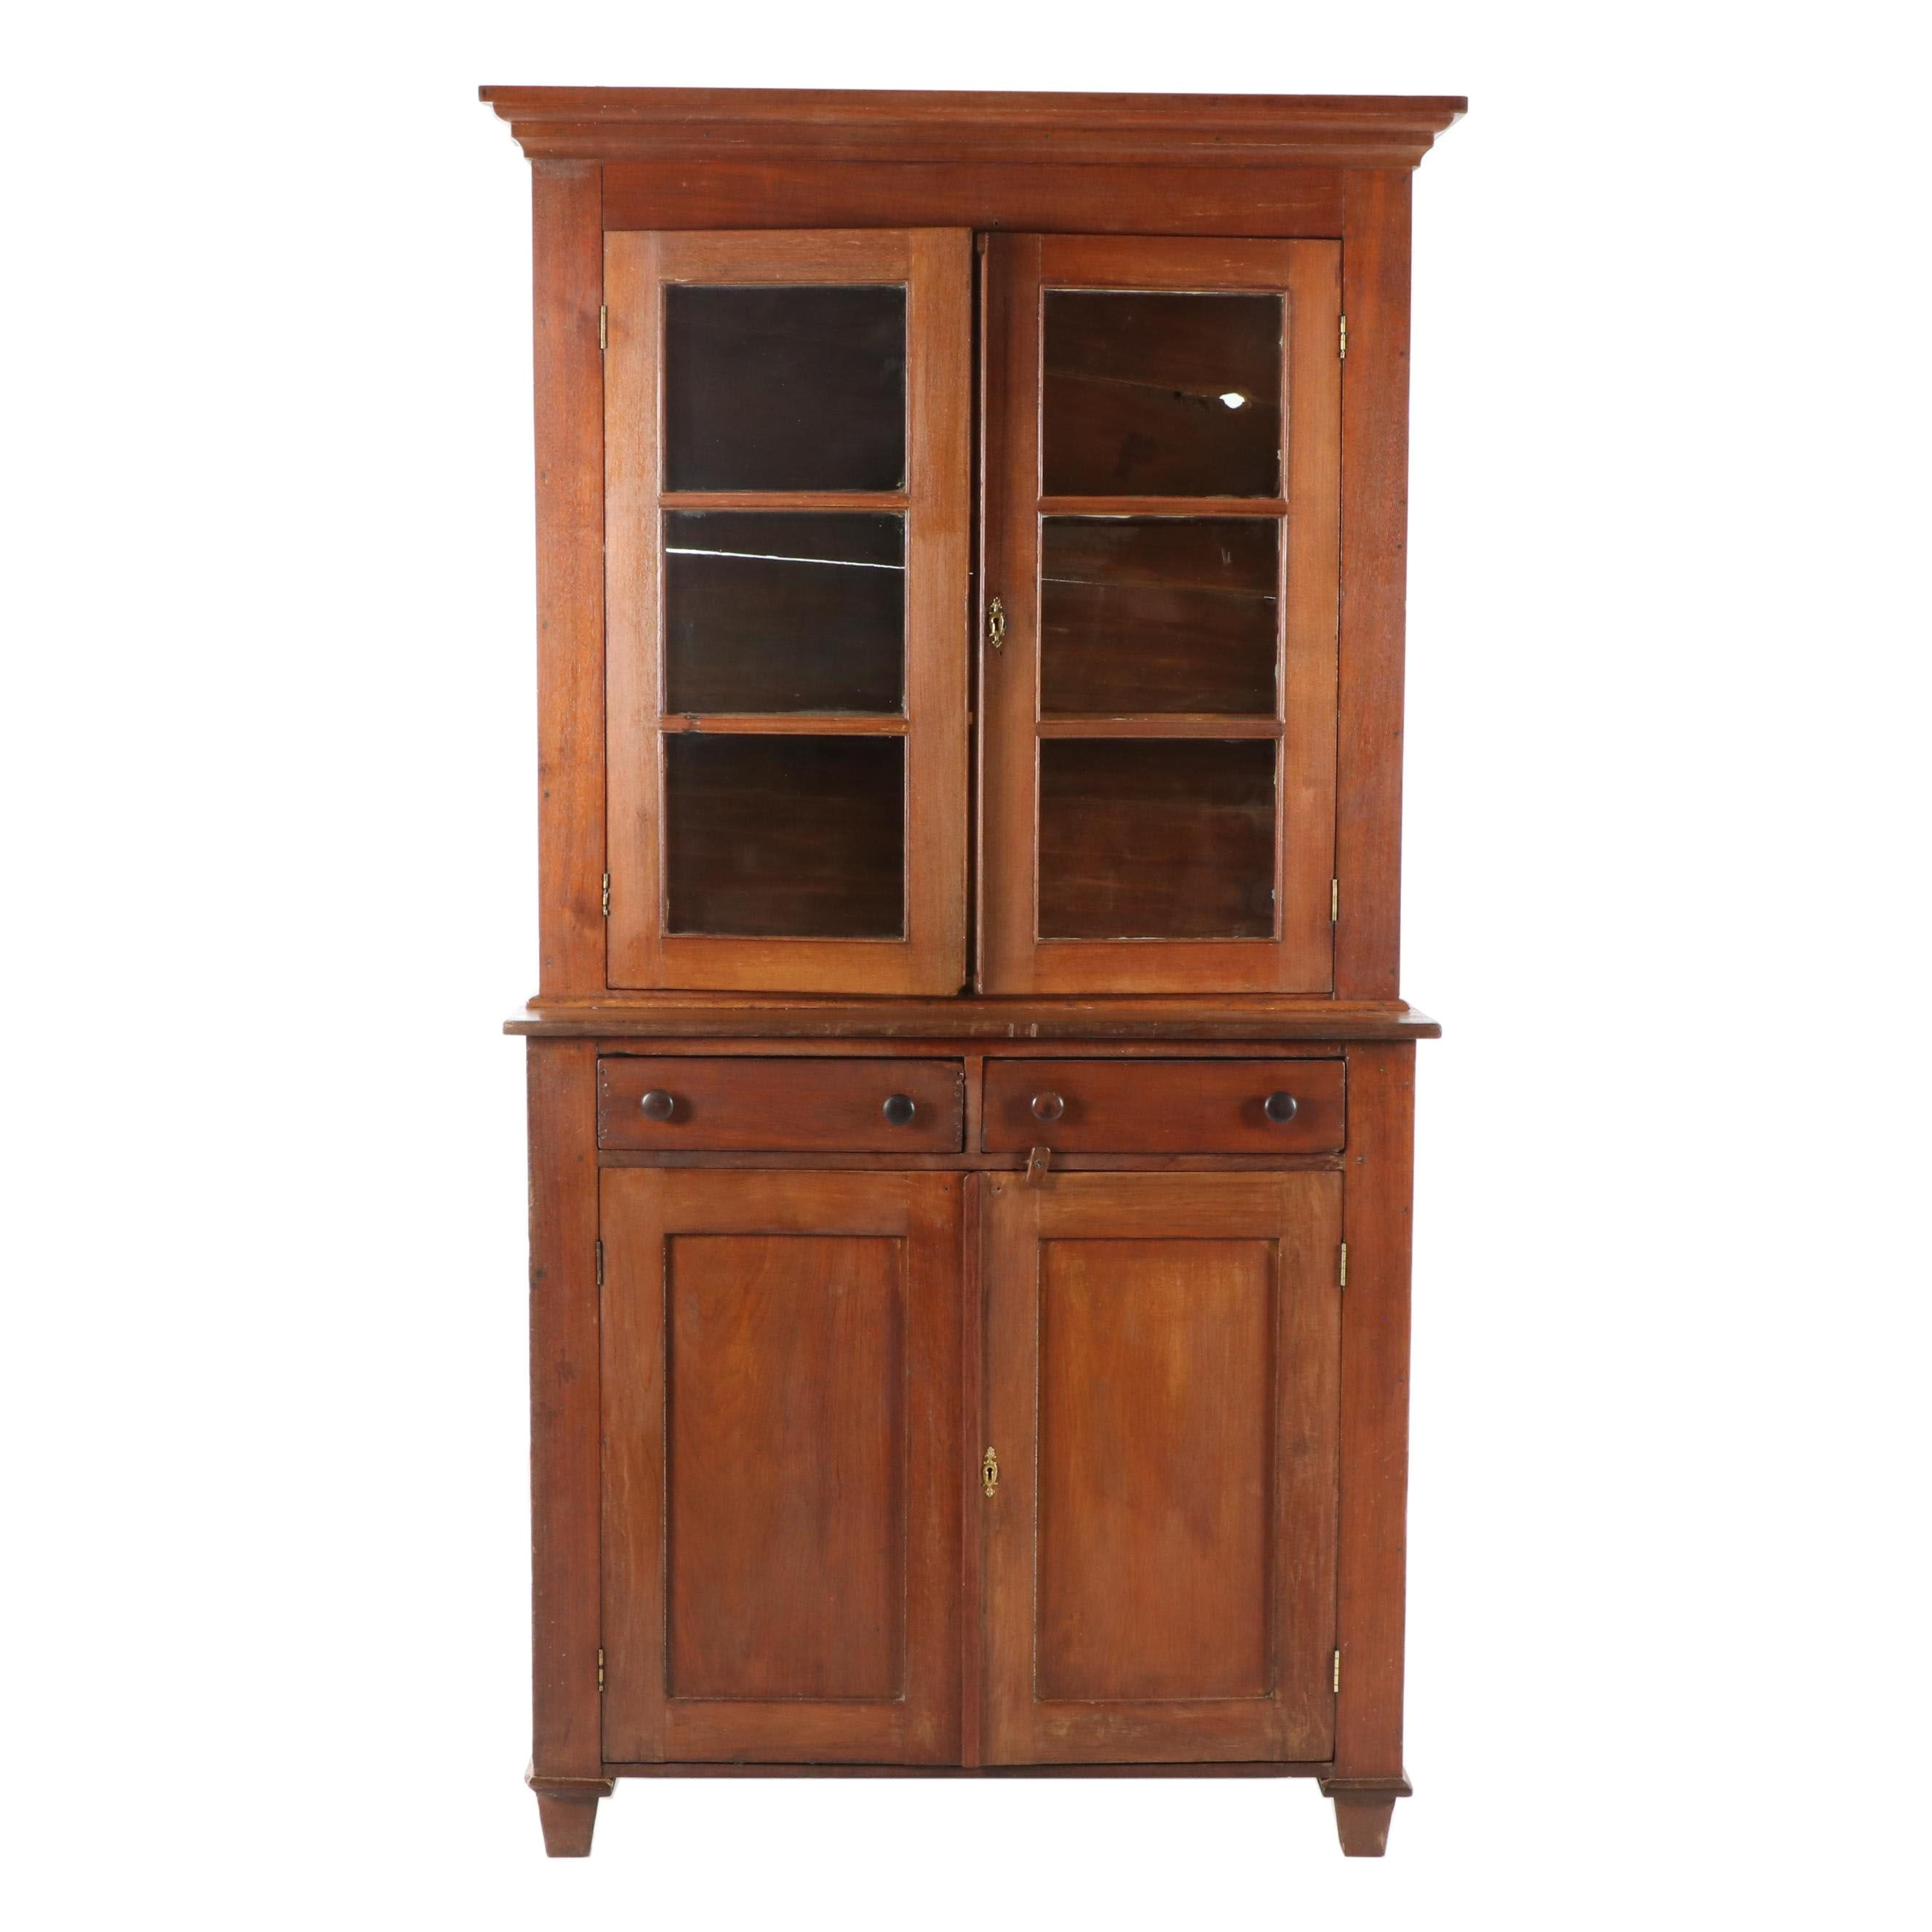 Cherrywood China Cabinet, Late 19th Century